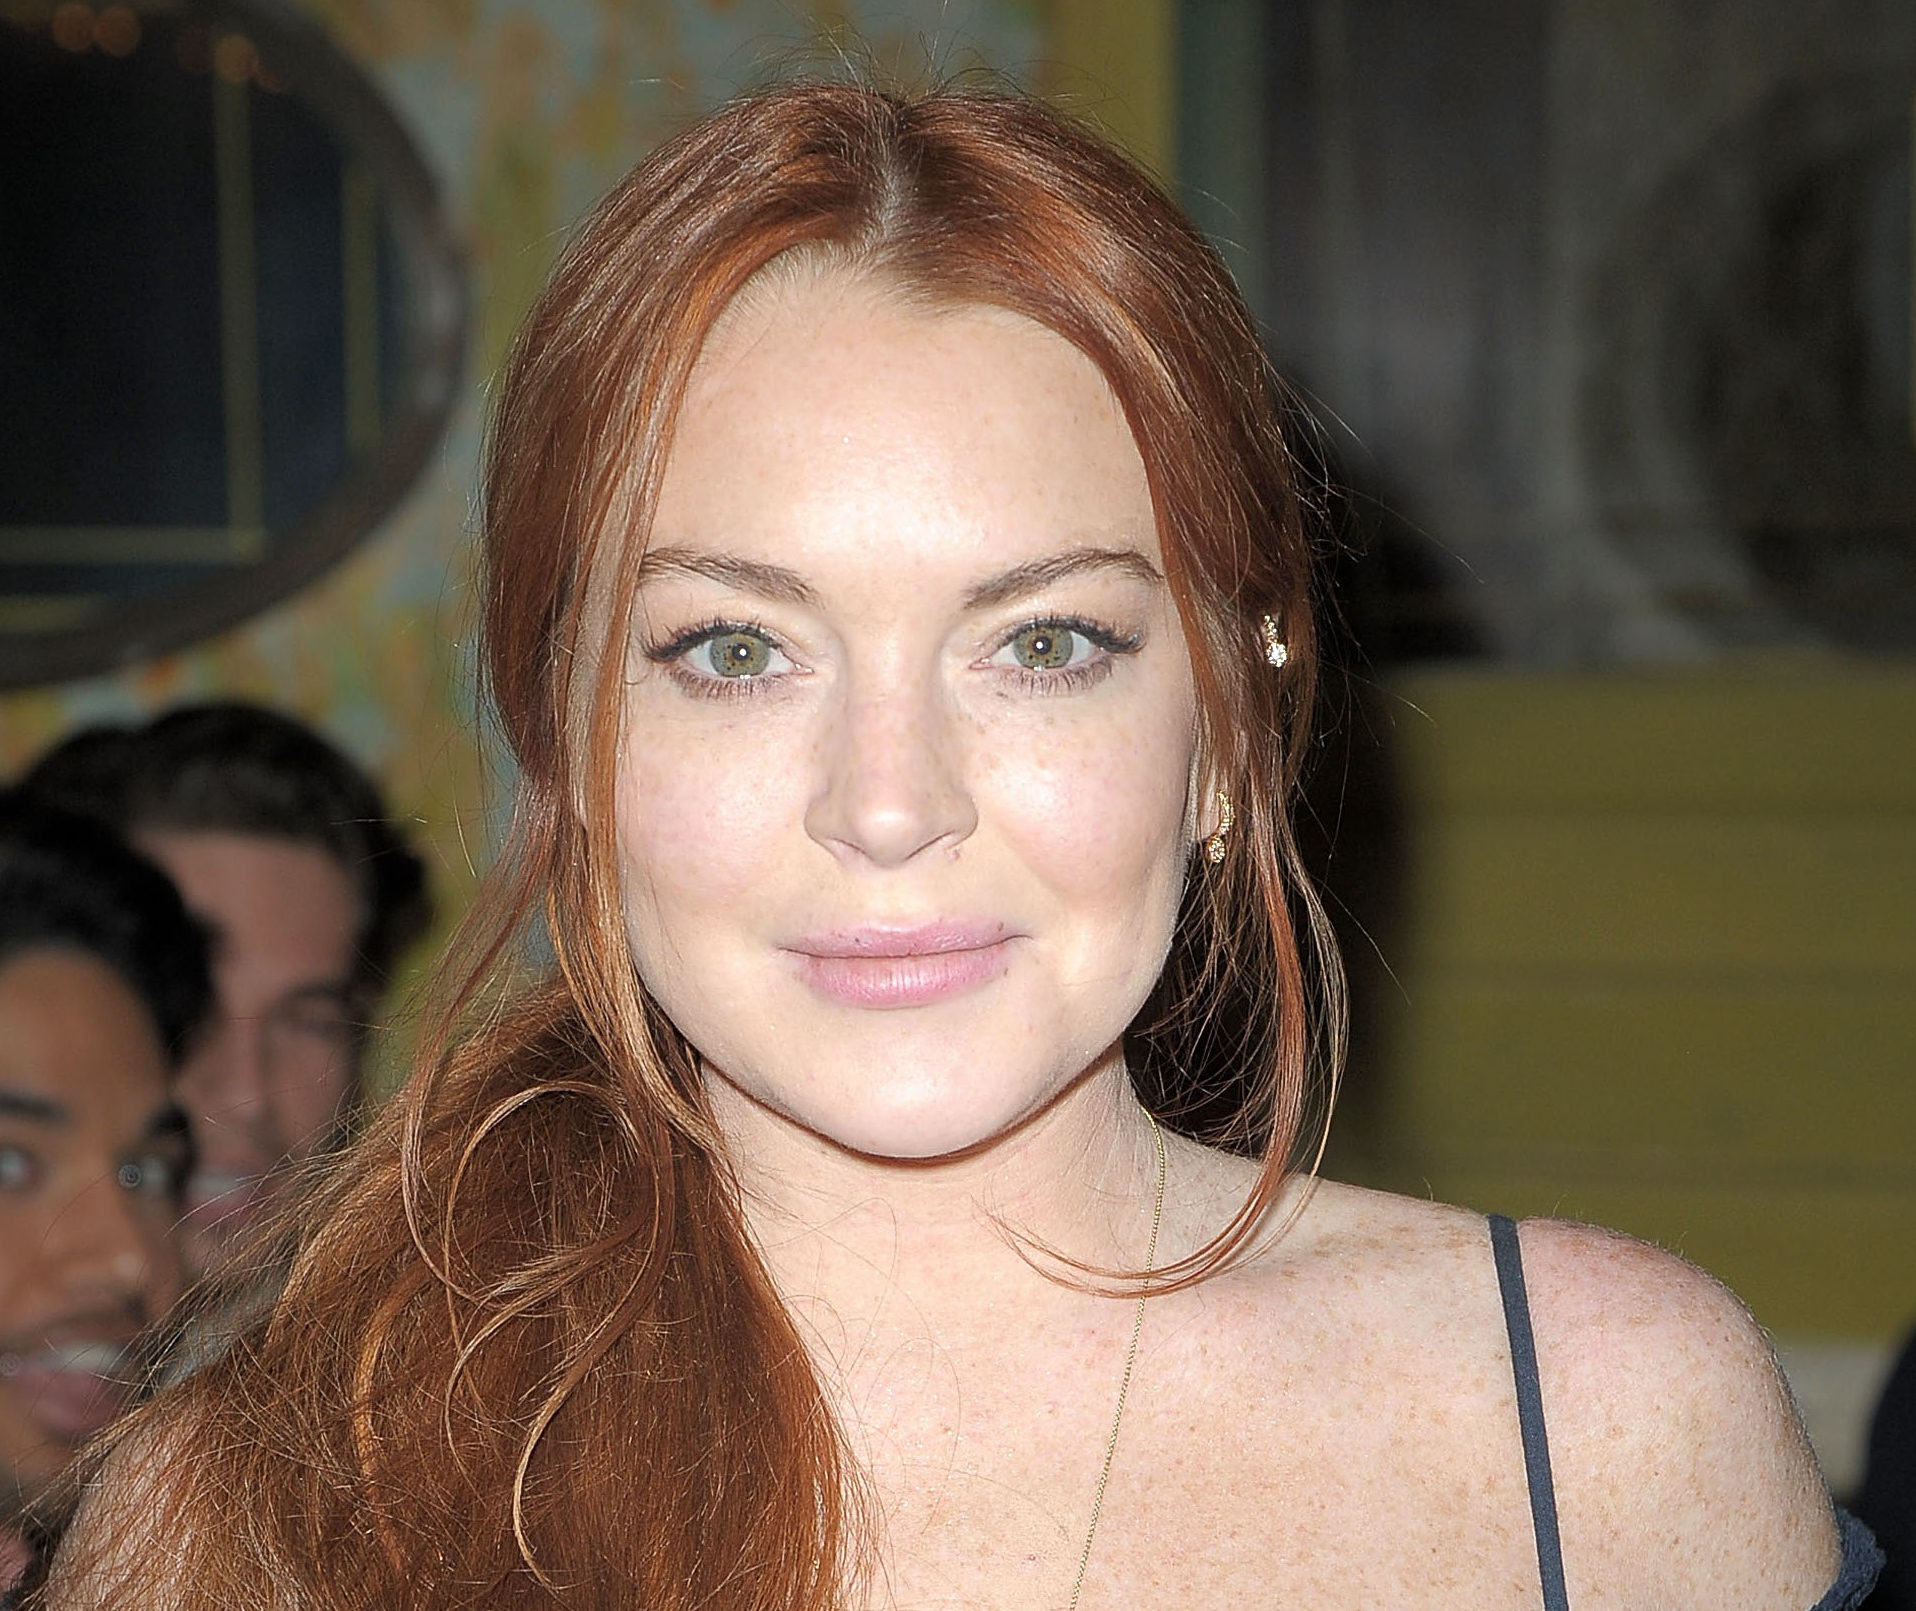 Lindsay Lohan is coming out with a fashion line?!